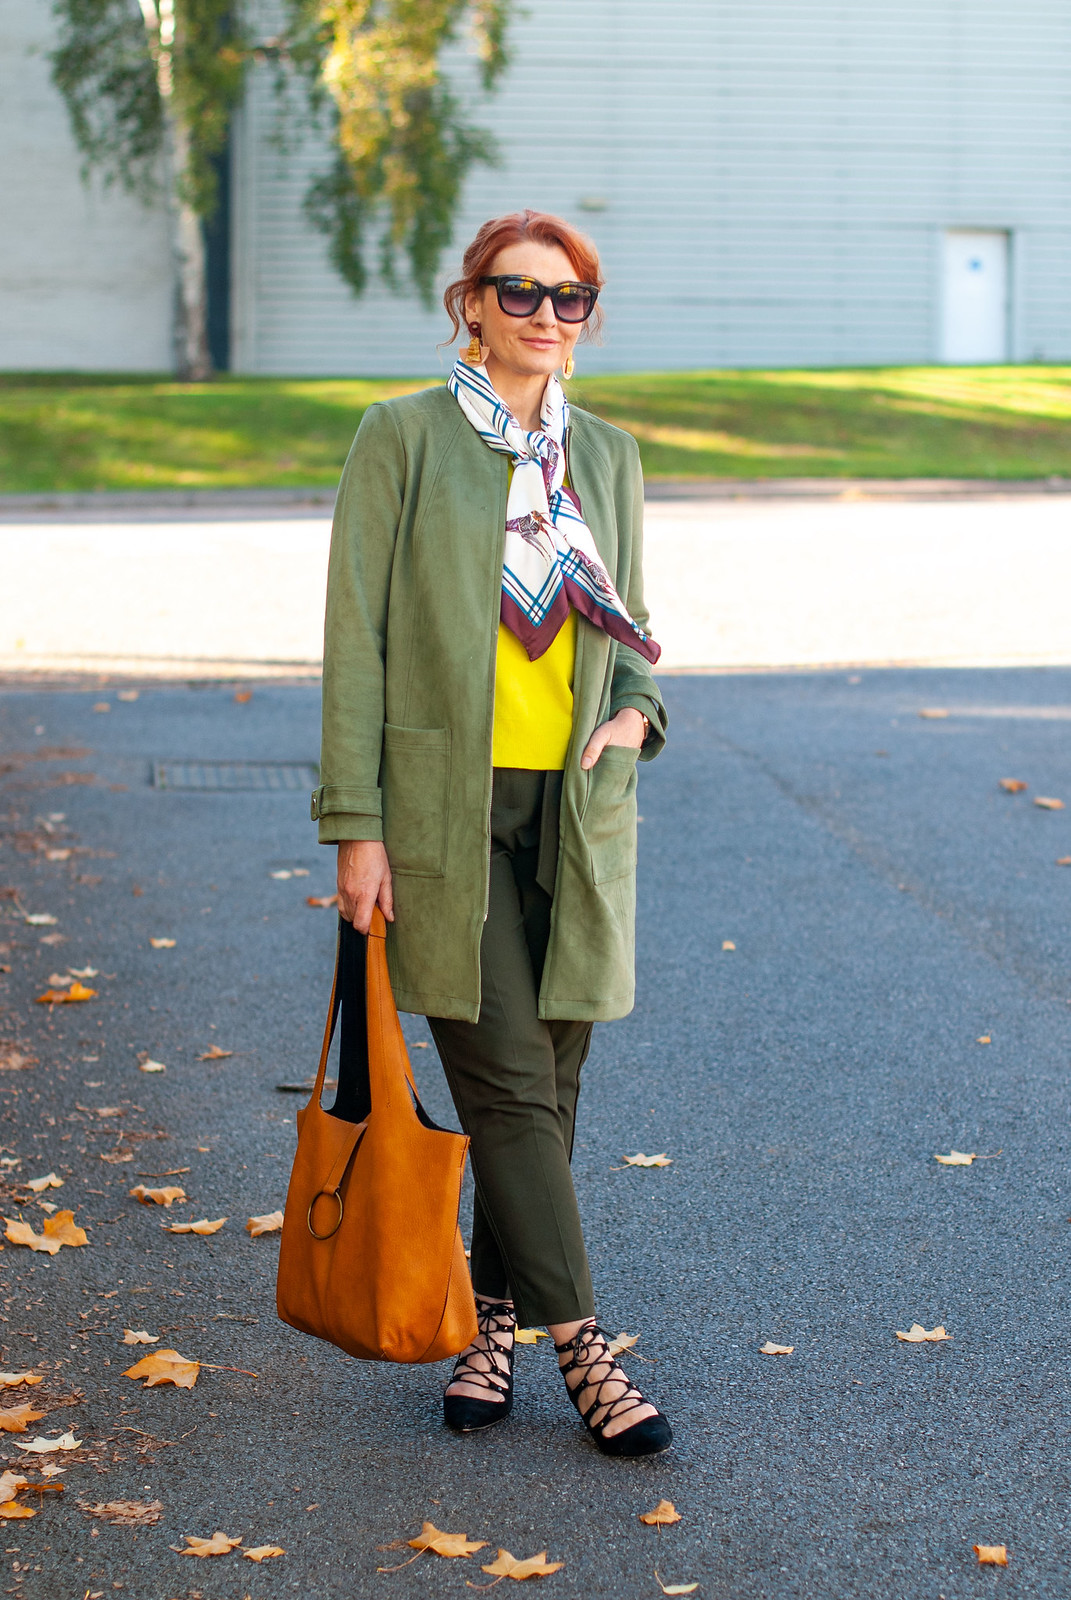 Styling Warm Shades of Green With a Giraffe Print | Not DRessed As Lamb, over 40 fashion